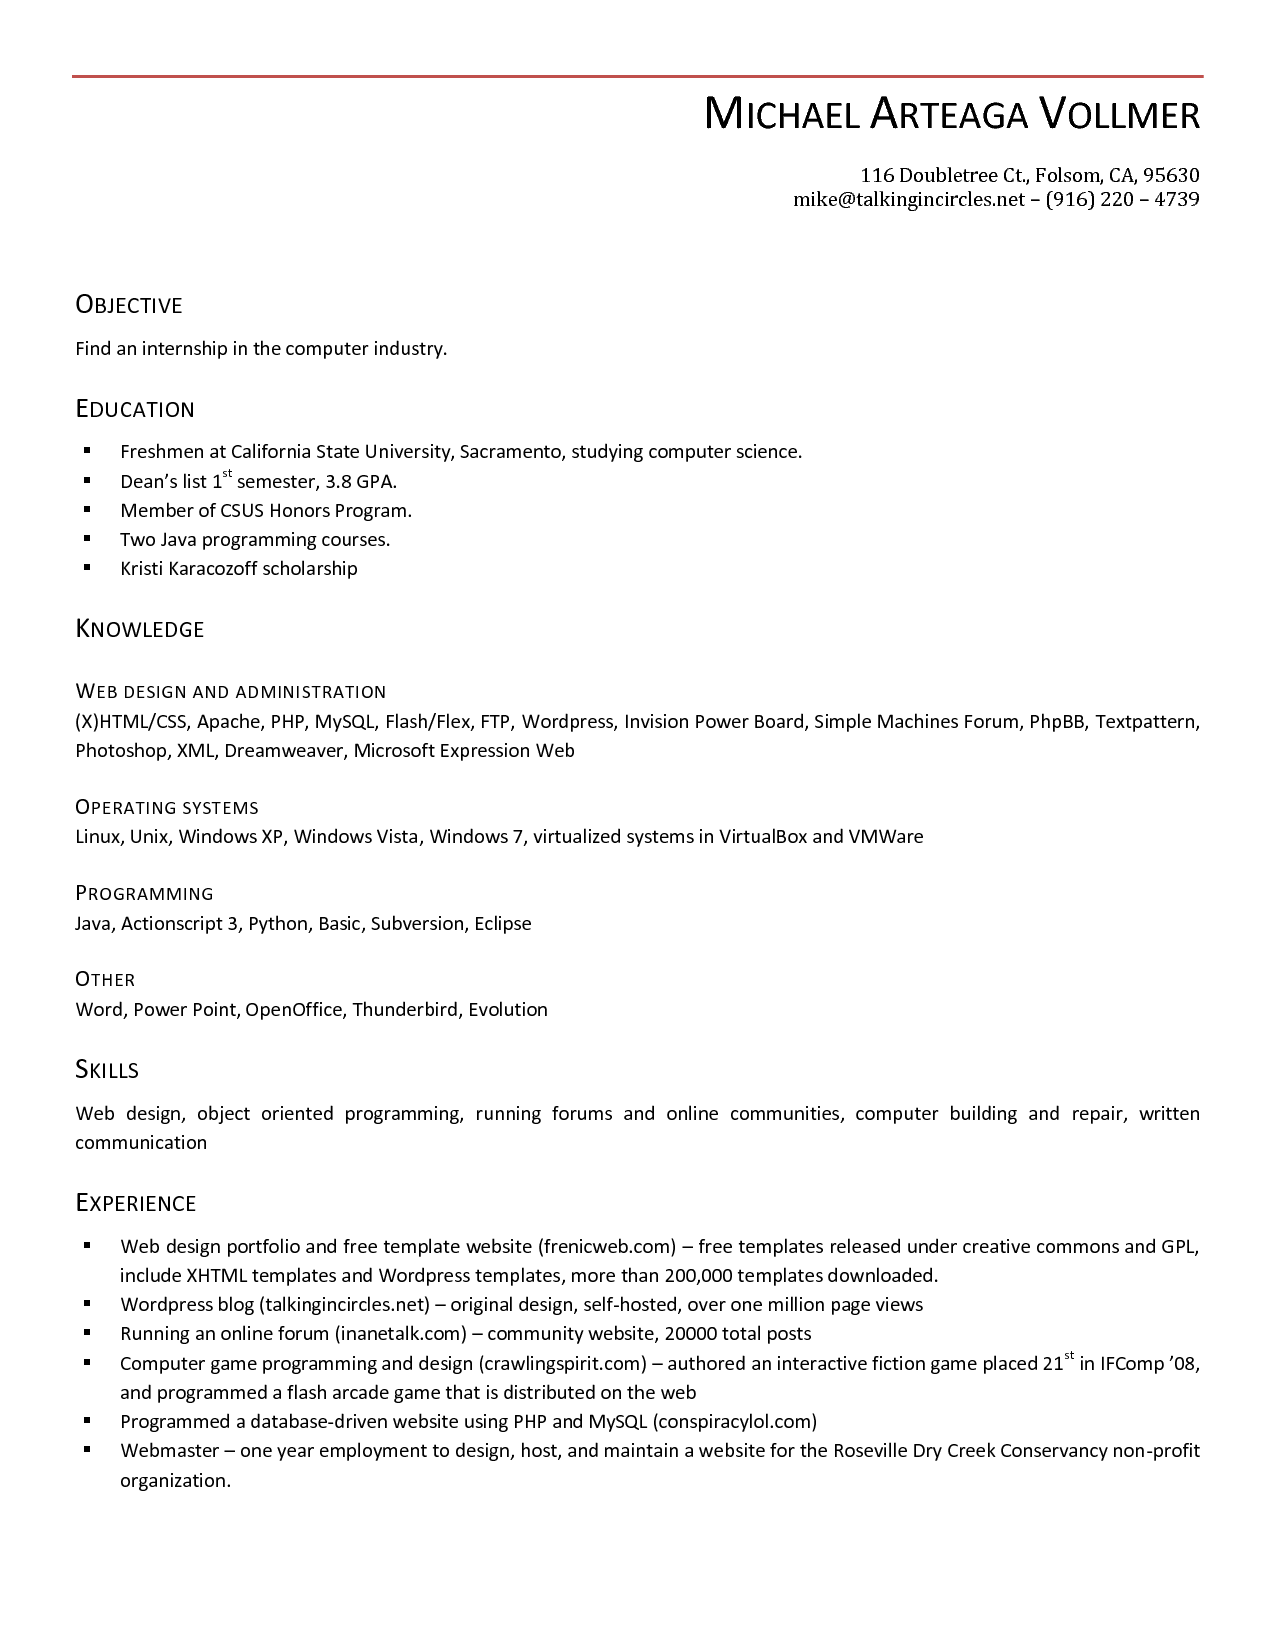 Resume Templates Free Download For Microsoft Word Legal Template Best  Create Professional Resumes Online Simple Openo  Microsoft Letter Templates Free